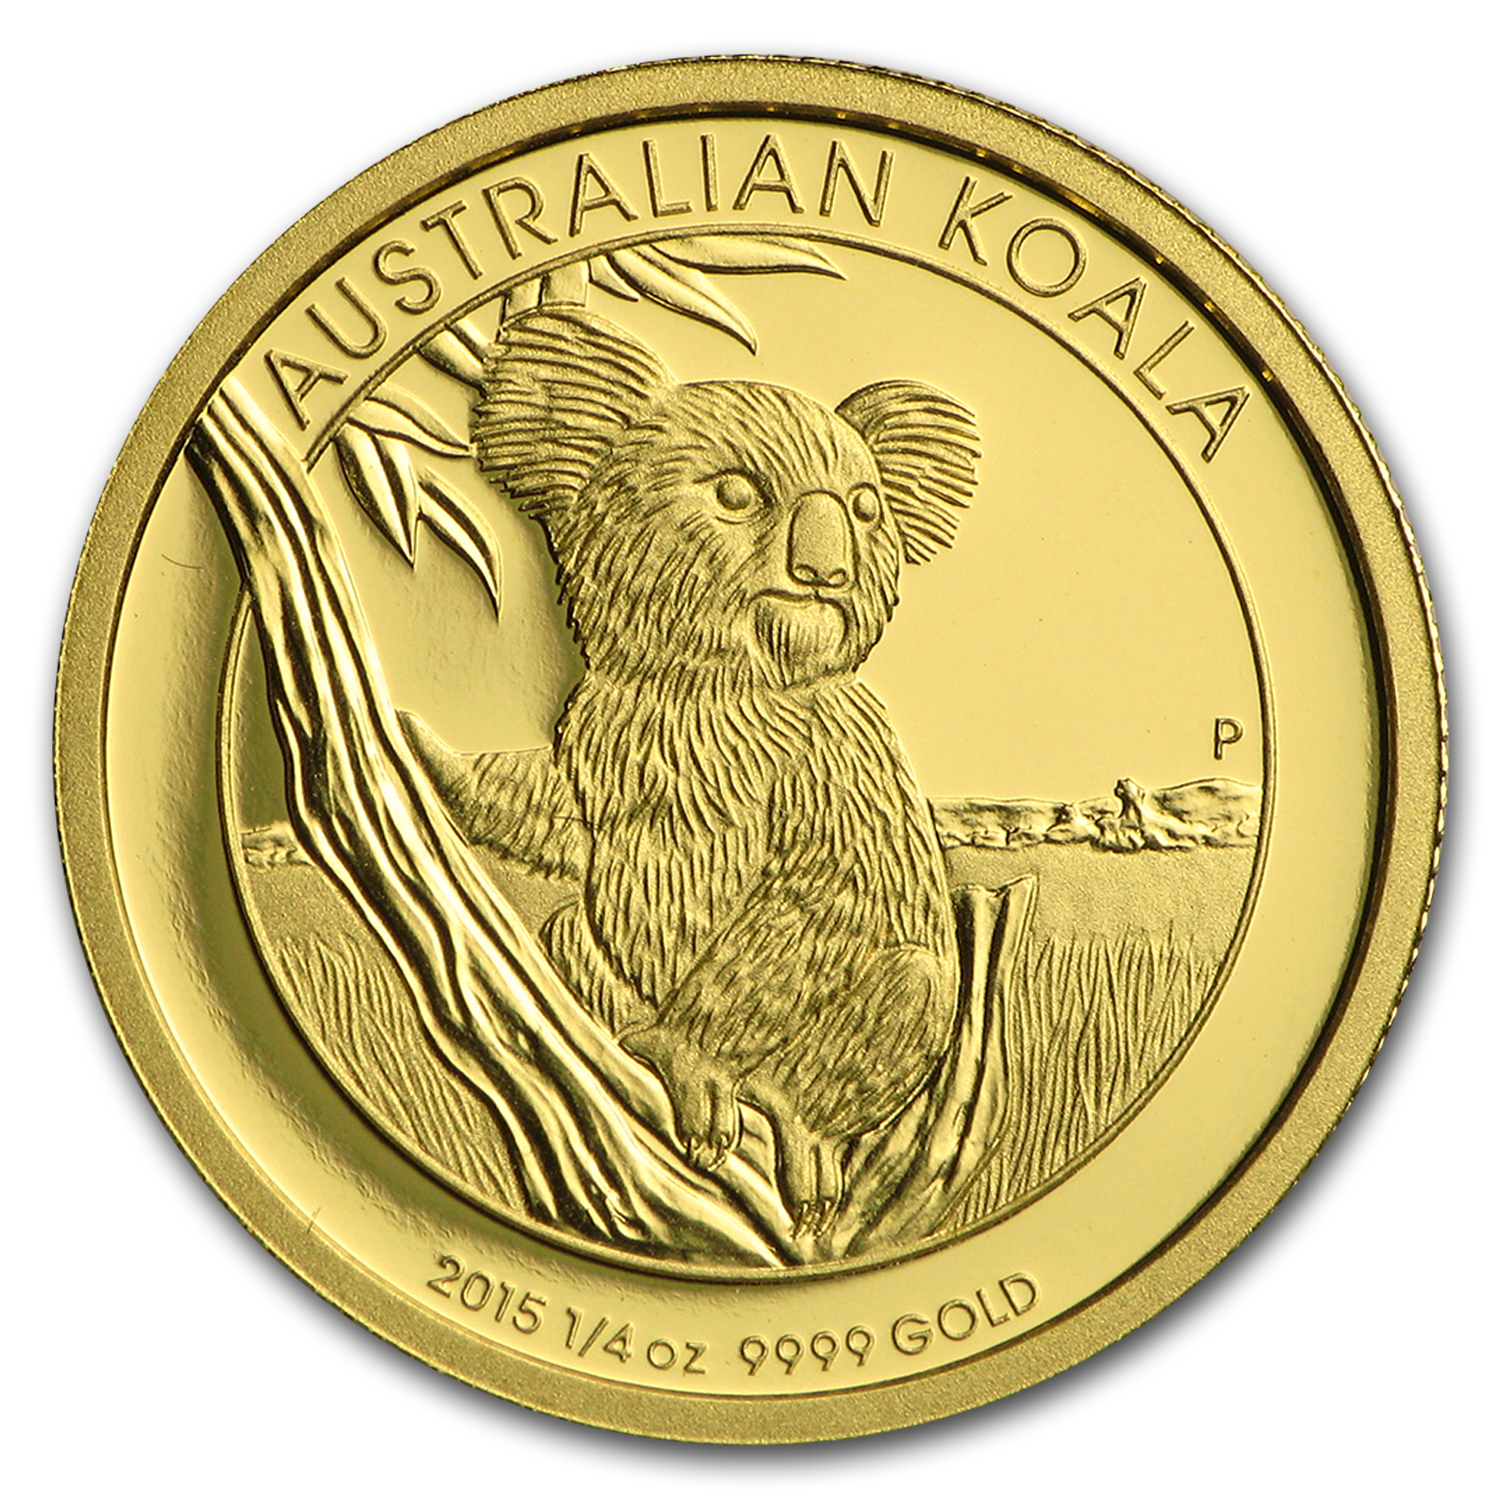 2015 Australia 1/4 oz Gold Koala Proof